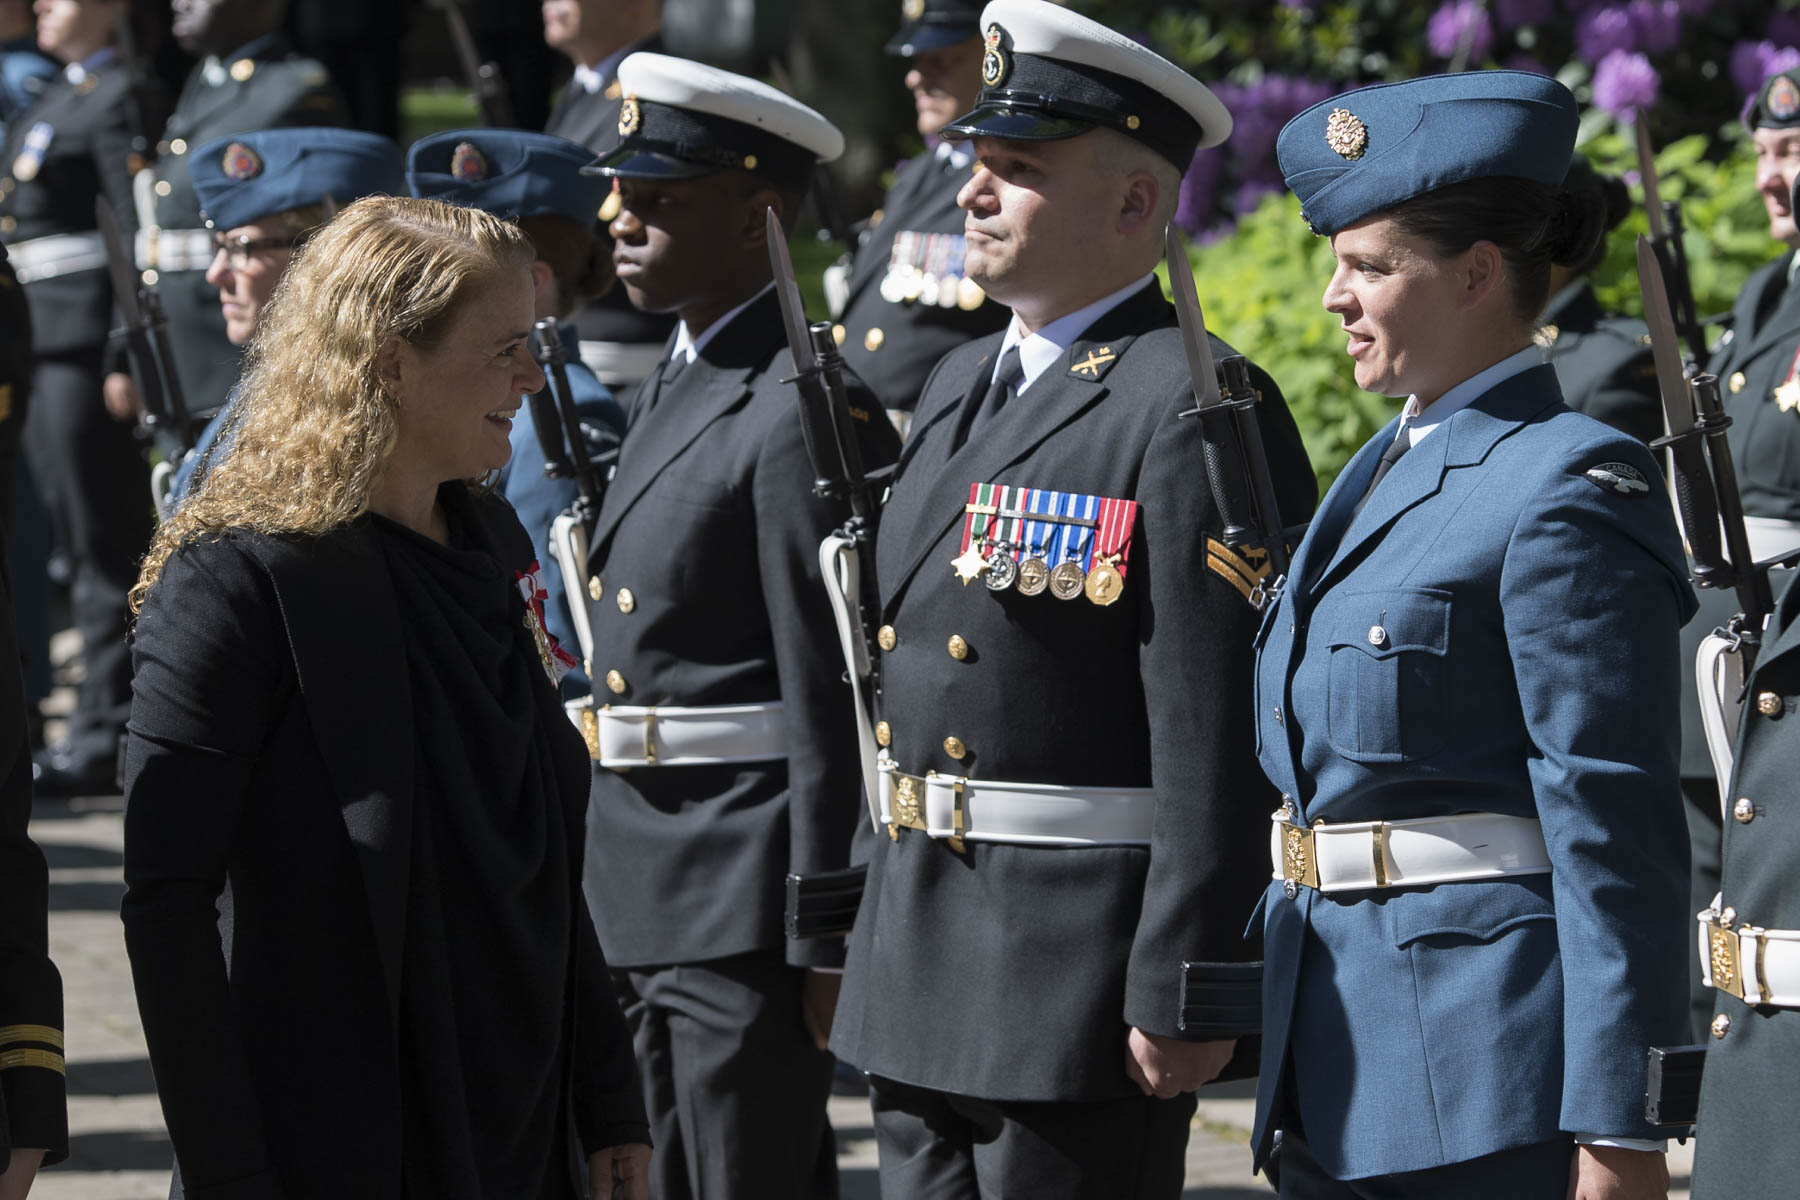 Upon arrival at Government House on June 26, 2018, Her Excellency received military honours, including a 50-person guard of honour.